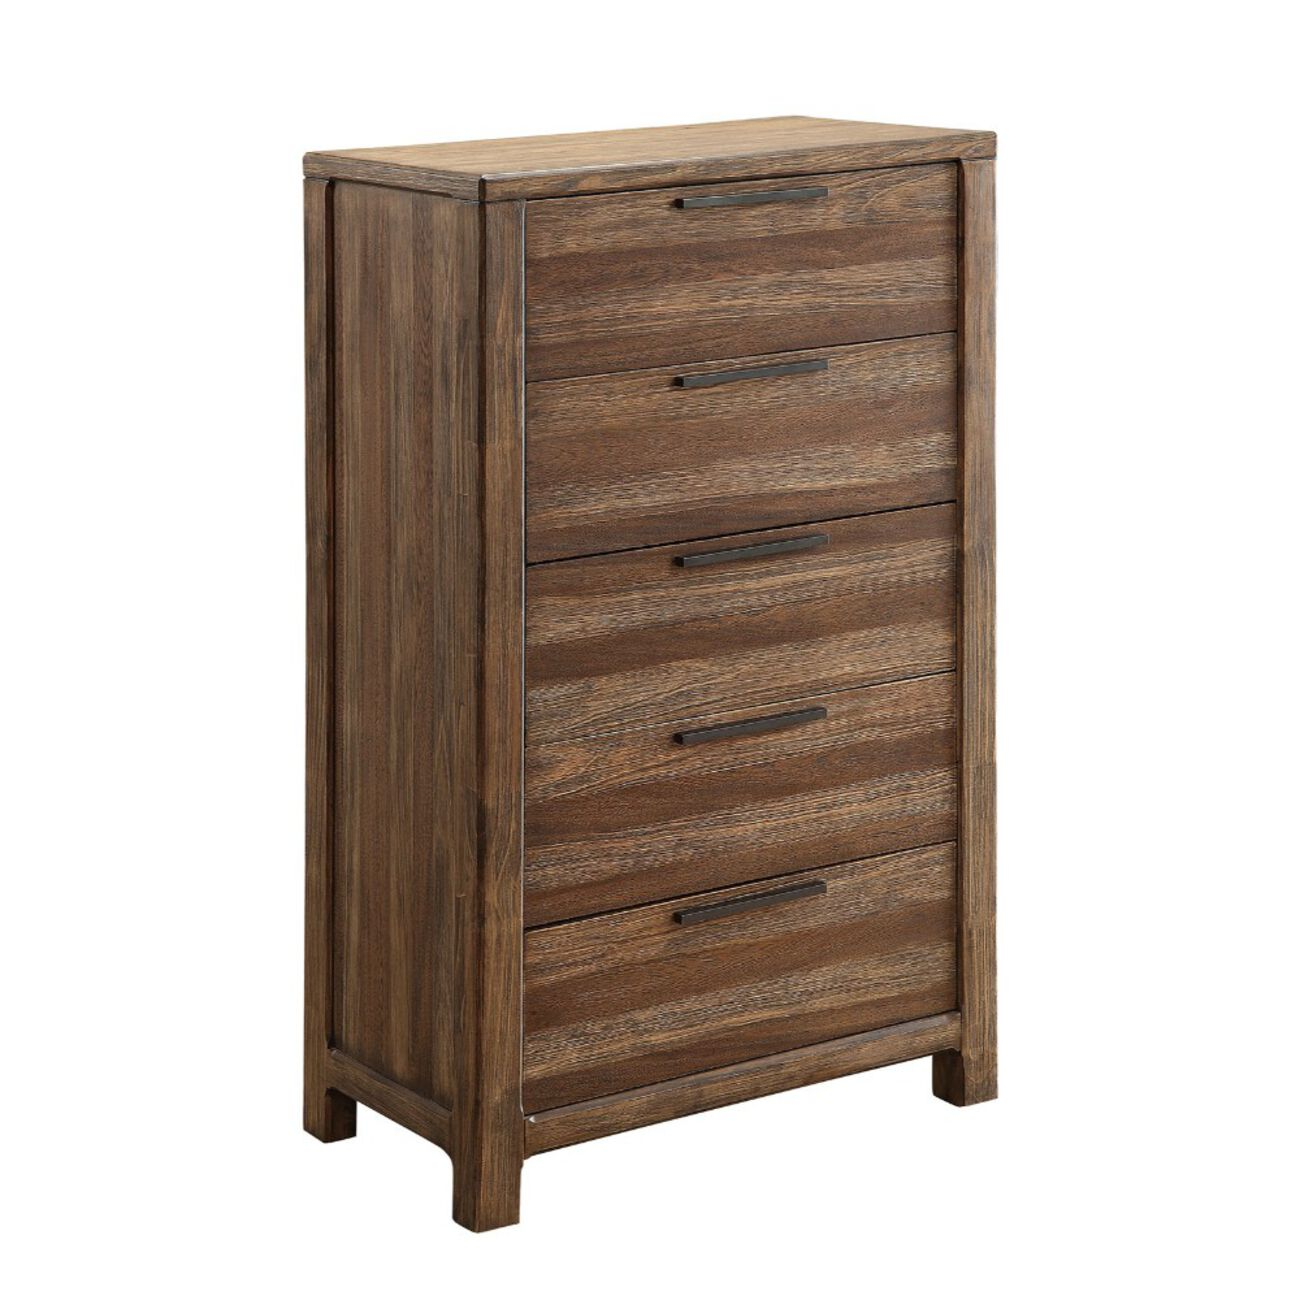 Minimalistic Designed 5- Drawer Chest, Rustic Natural Brown